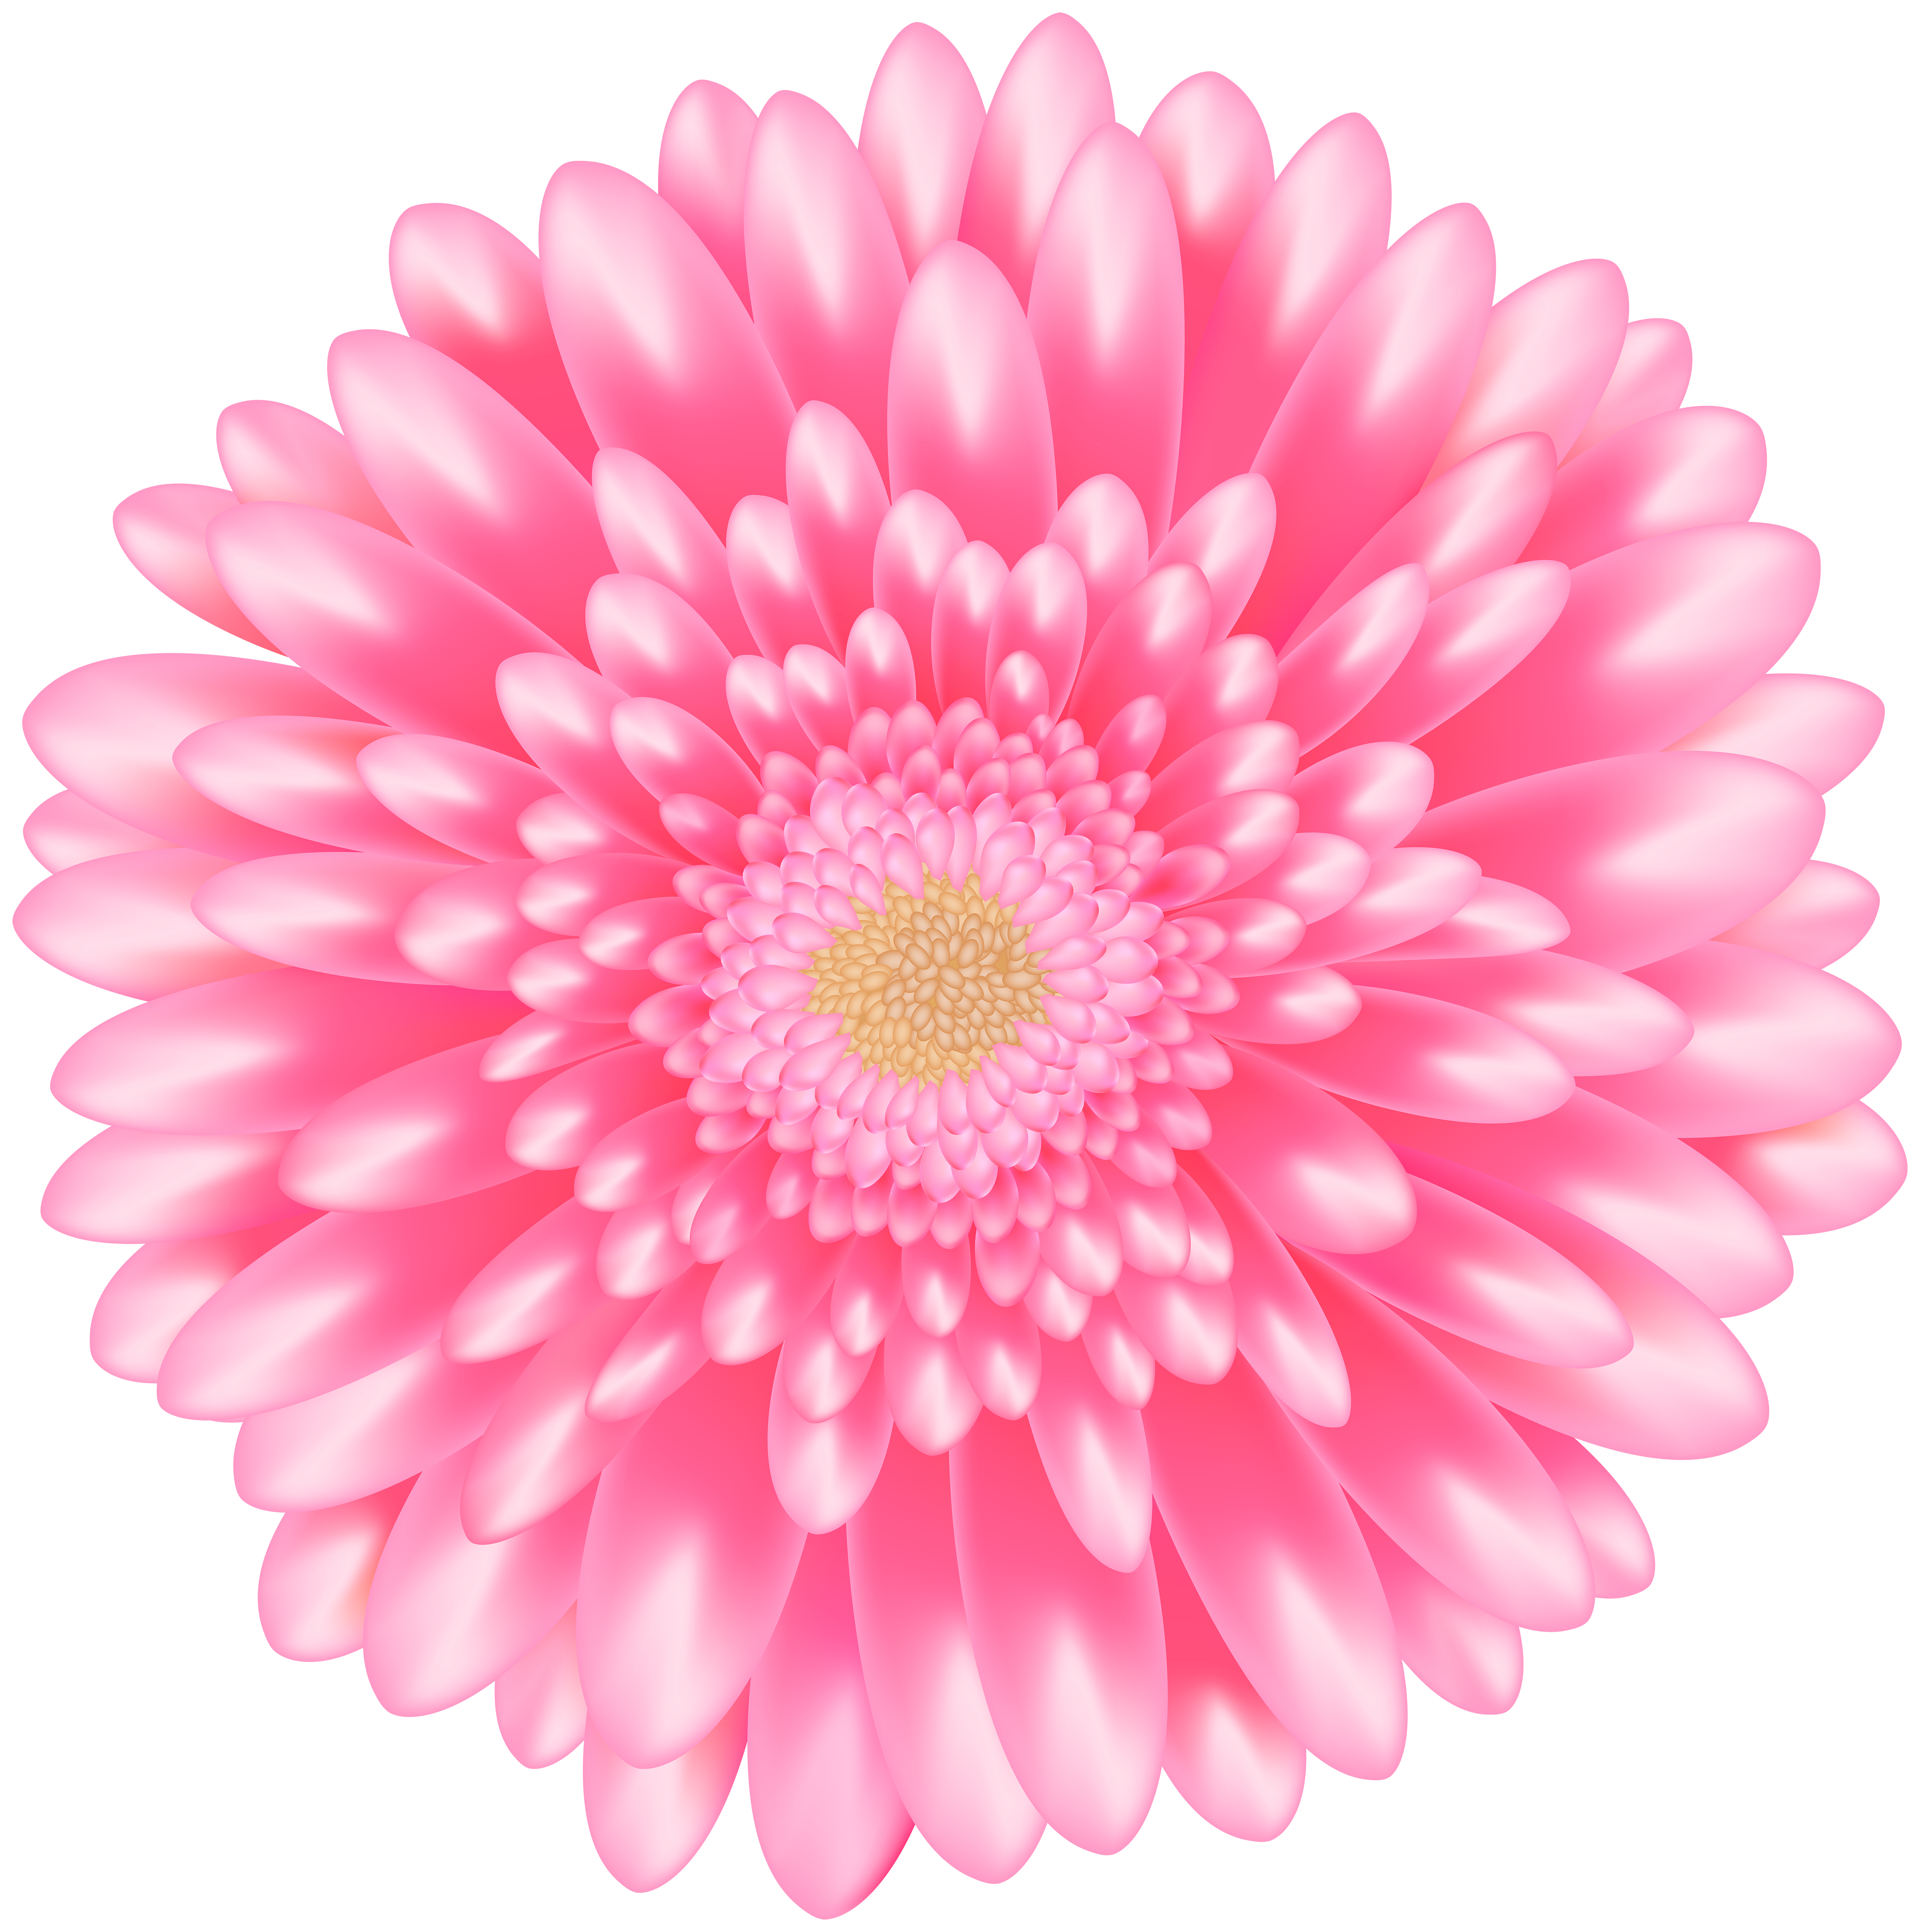 Pink clipart flowers image stock Flower Pink Transparent Clip Art Image | Gallery ... image stock